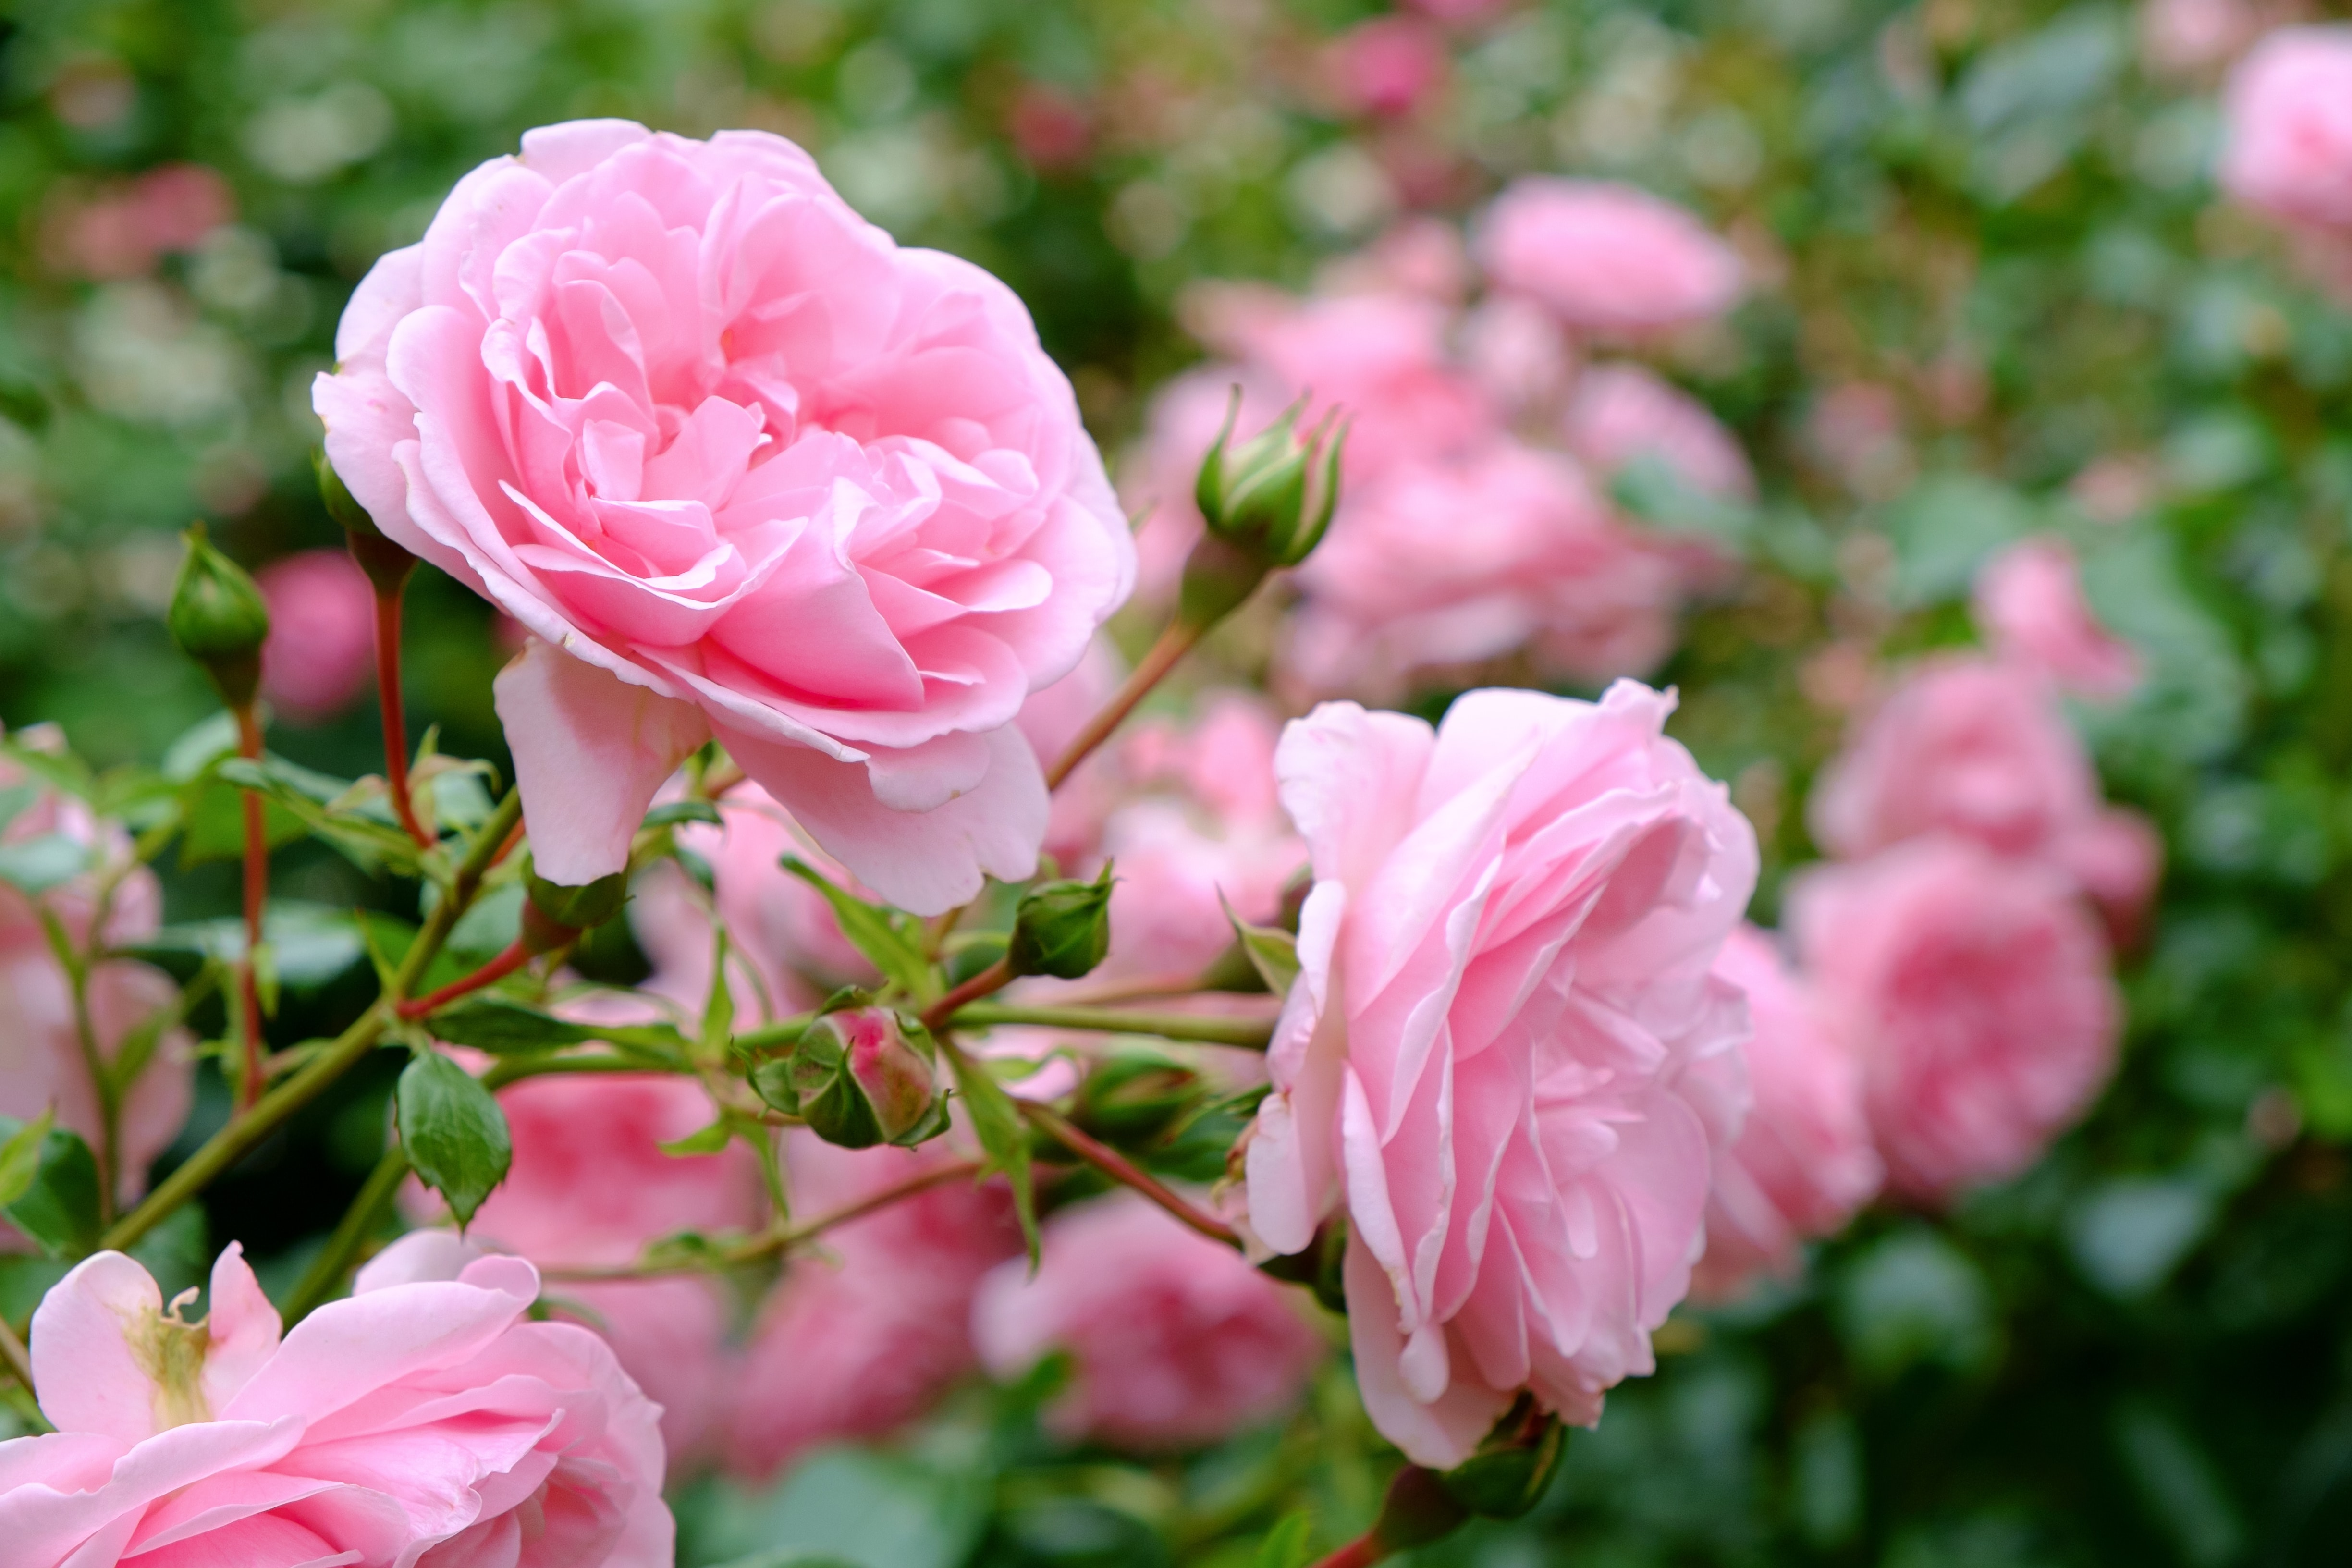 Blooming Pink roses and buds on a bush in the garde